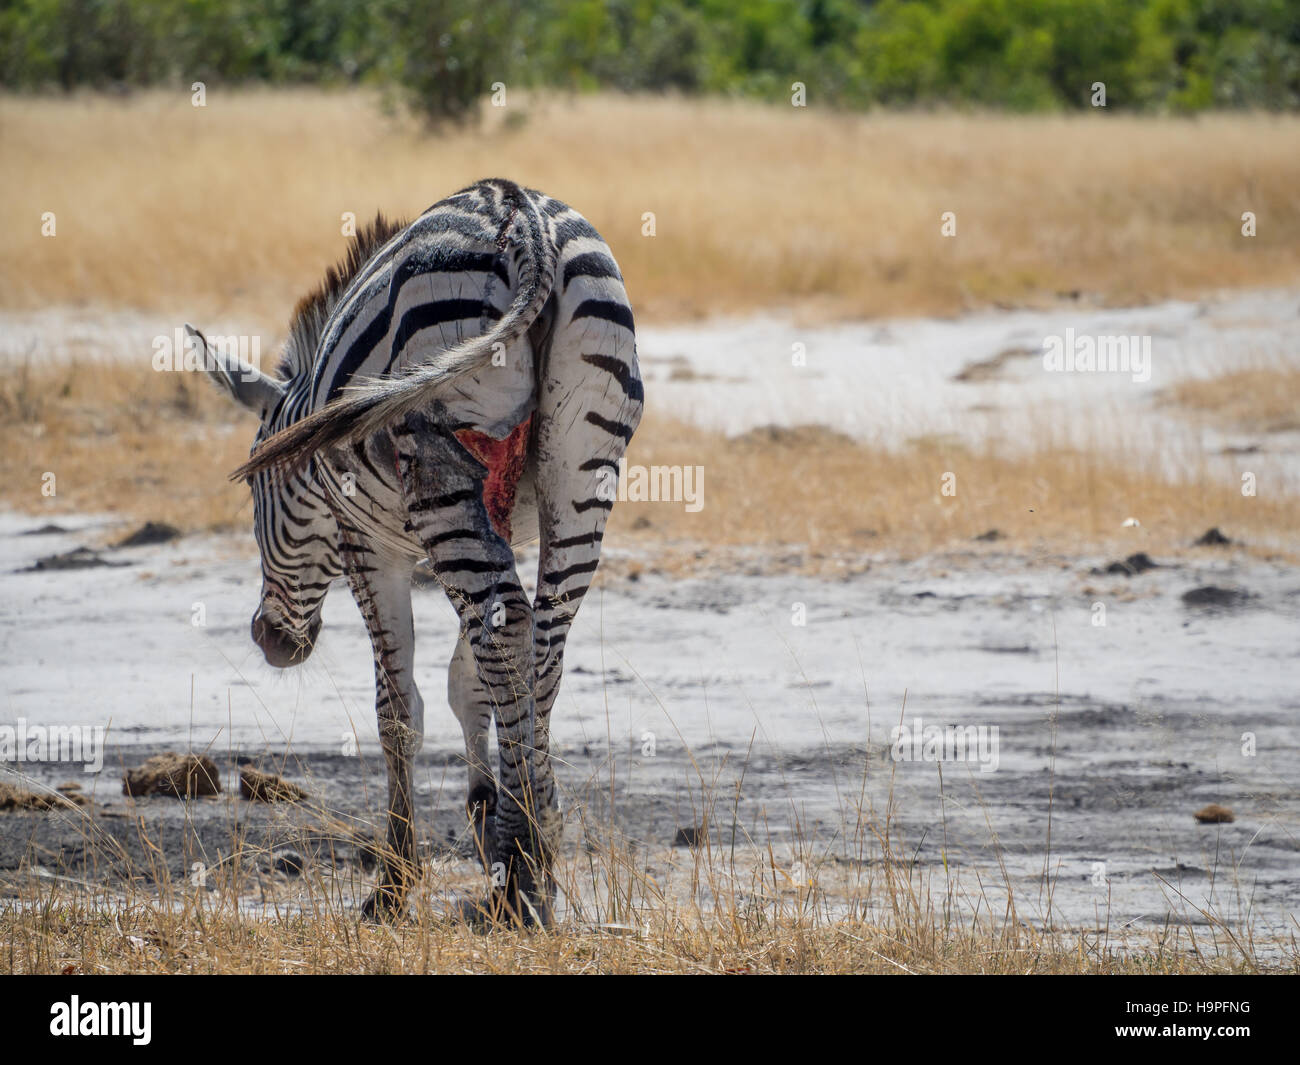 Heavily injured and wounded zebra walking and grazing in Moremi NP, Botswana, Africa - Stock Image